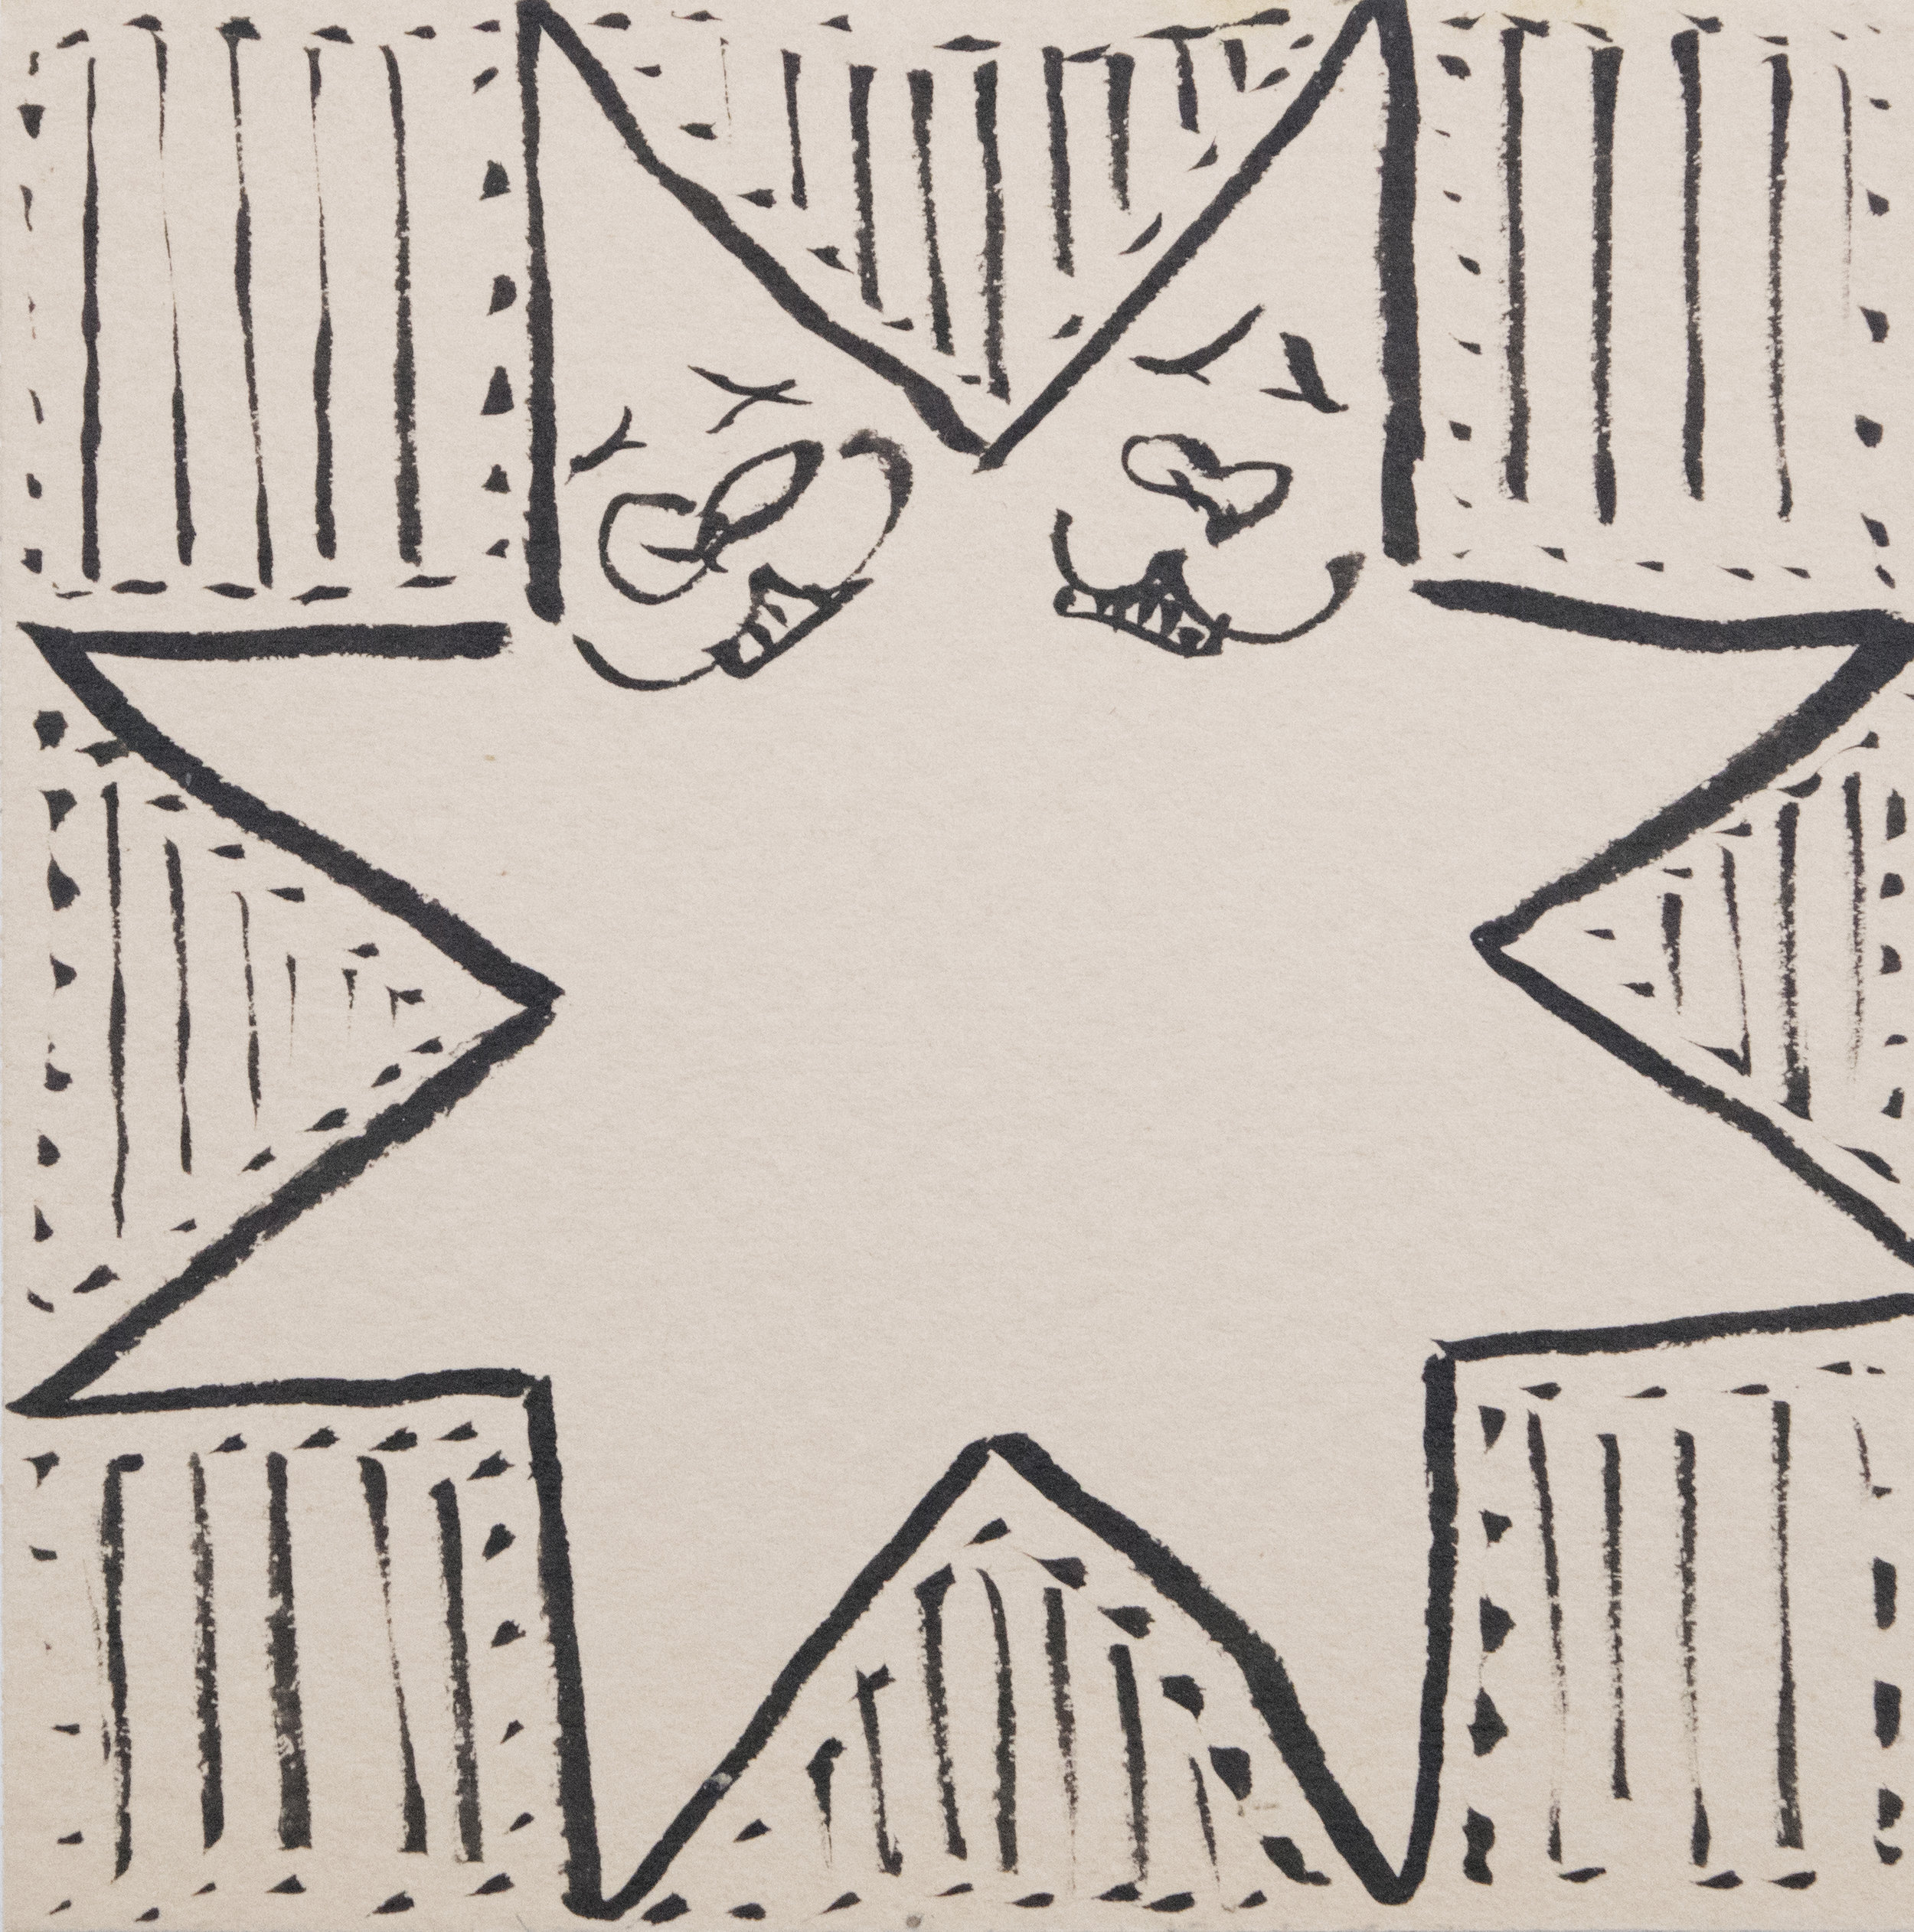 Untitled (Starmen)  , 2018 pen on paper 3 x 3 inches